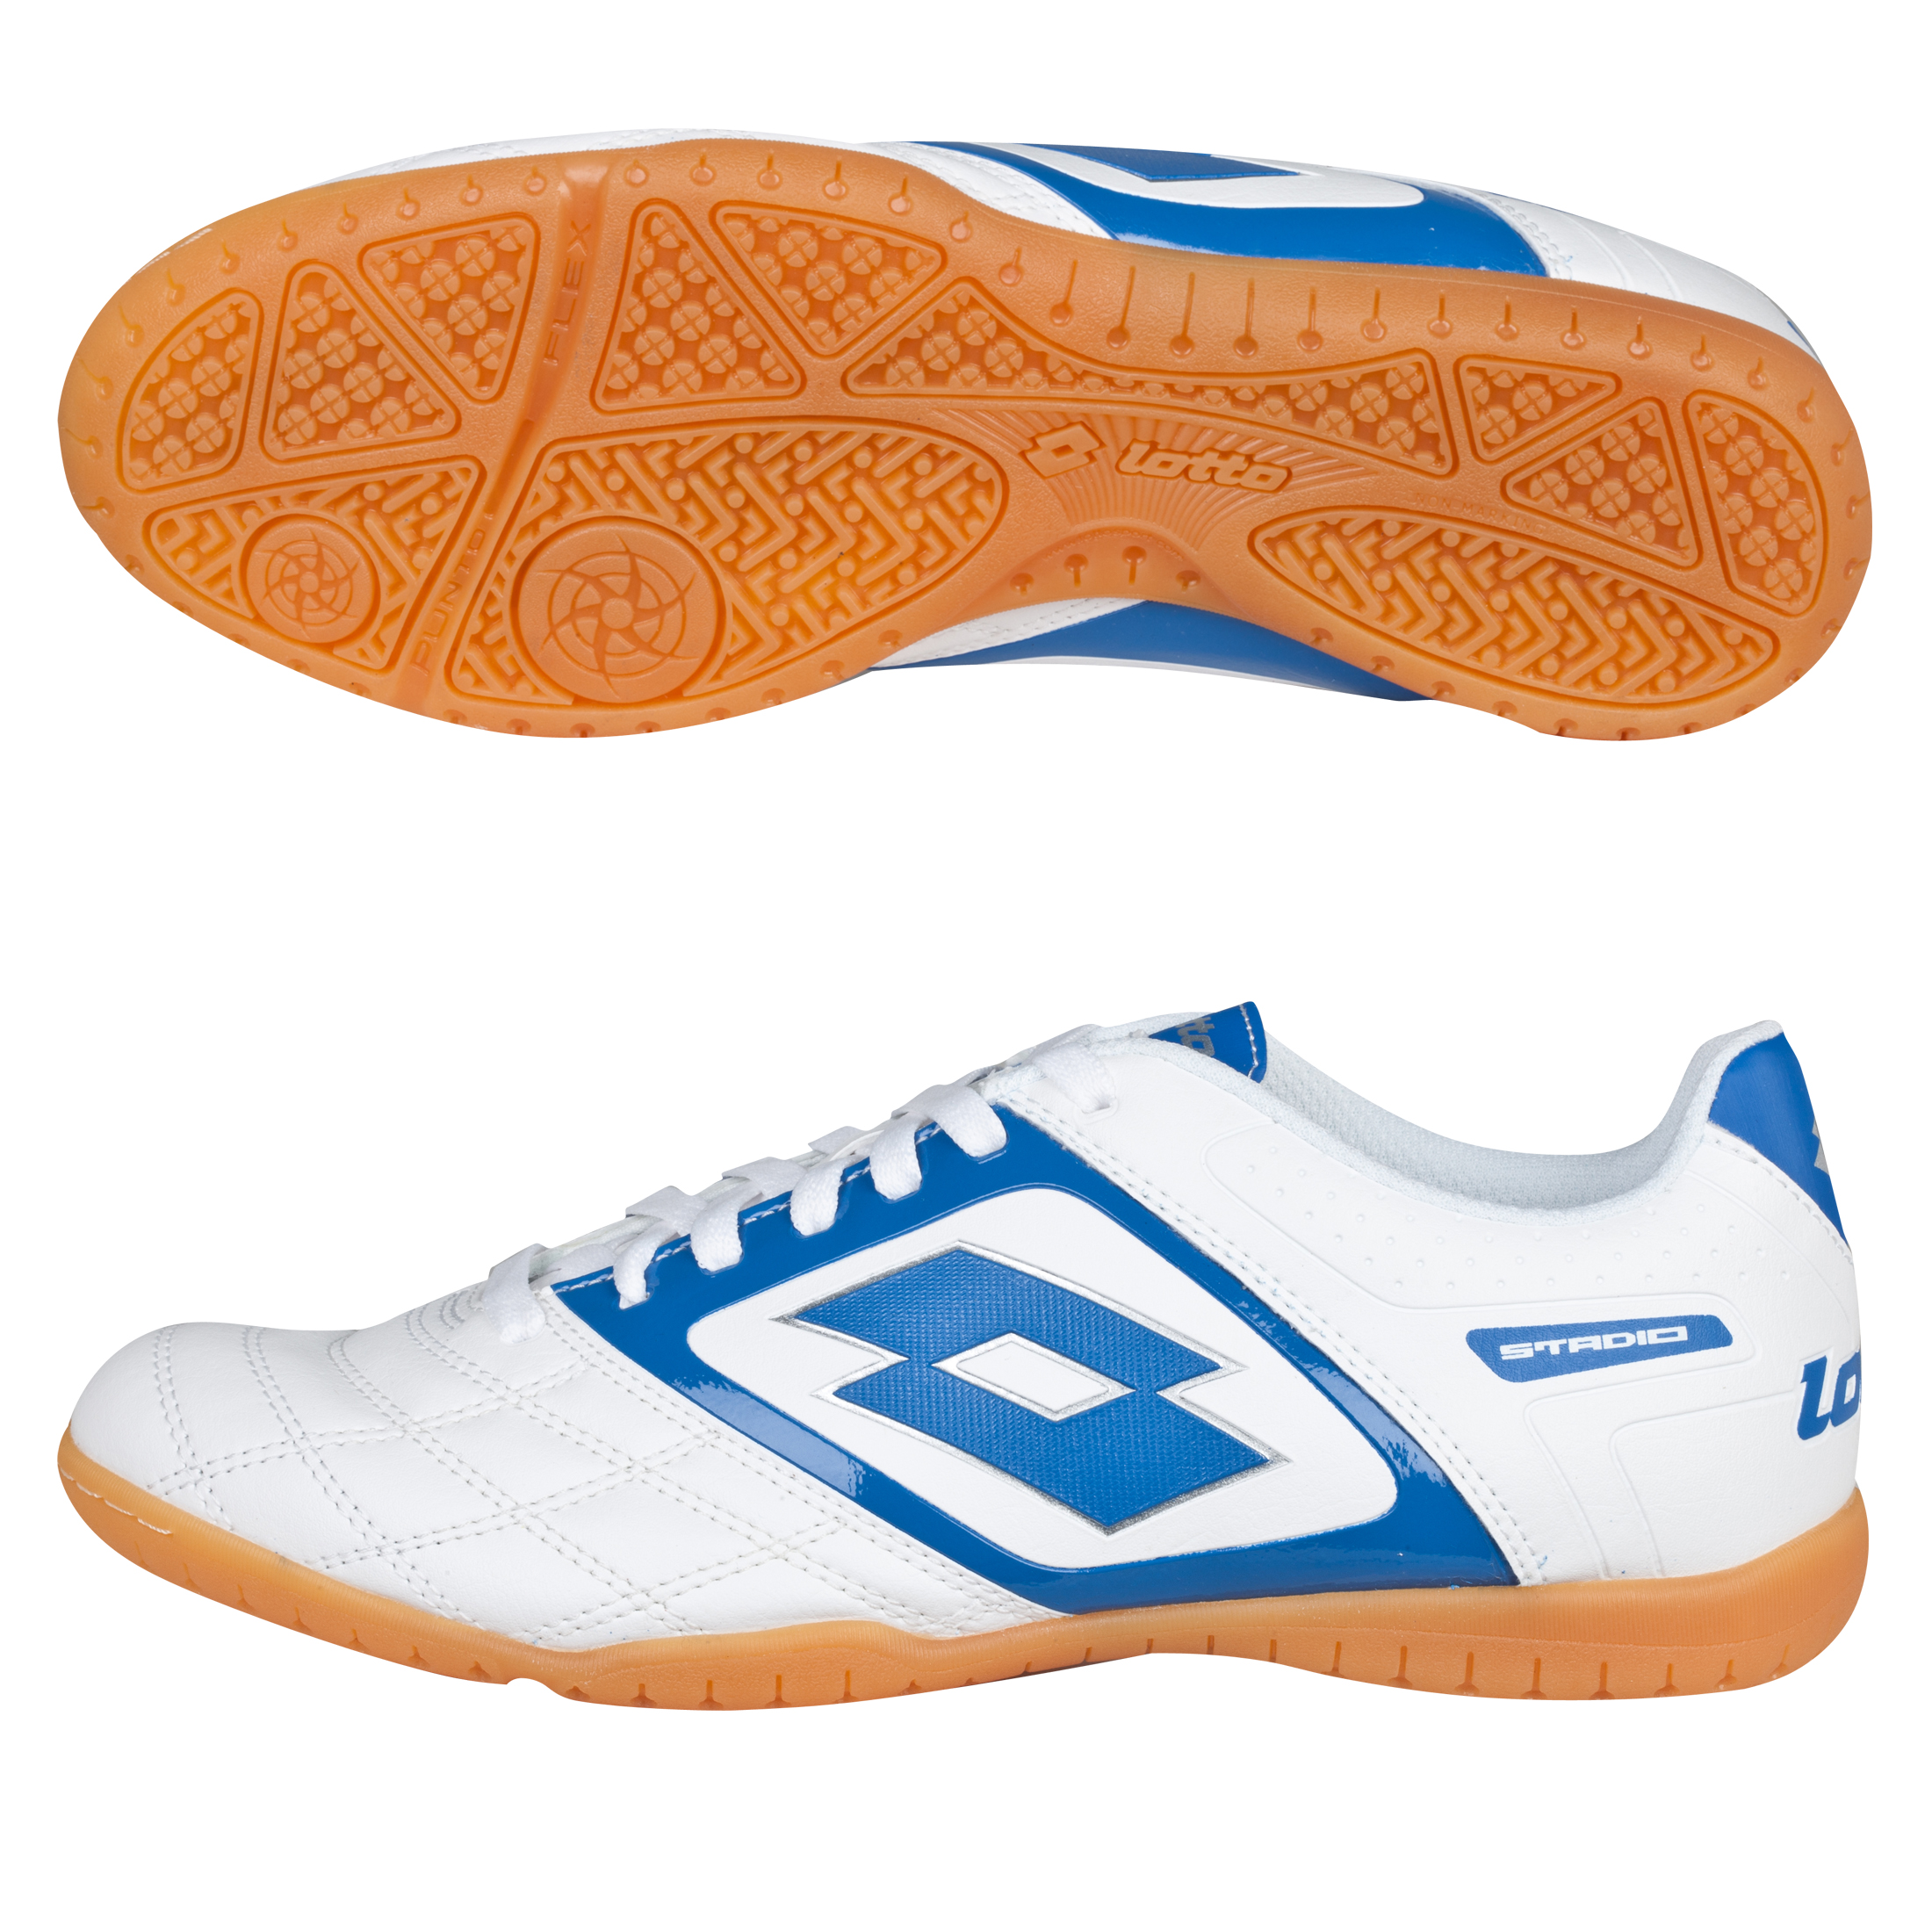 Lotto Stadio Potenza II 700 Indoor Trainers - White/Blue